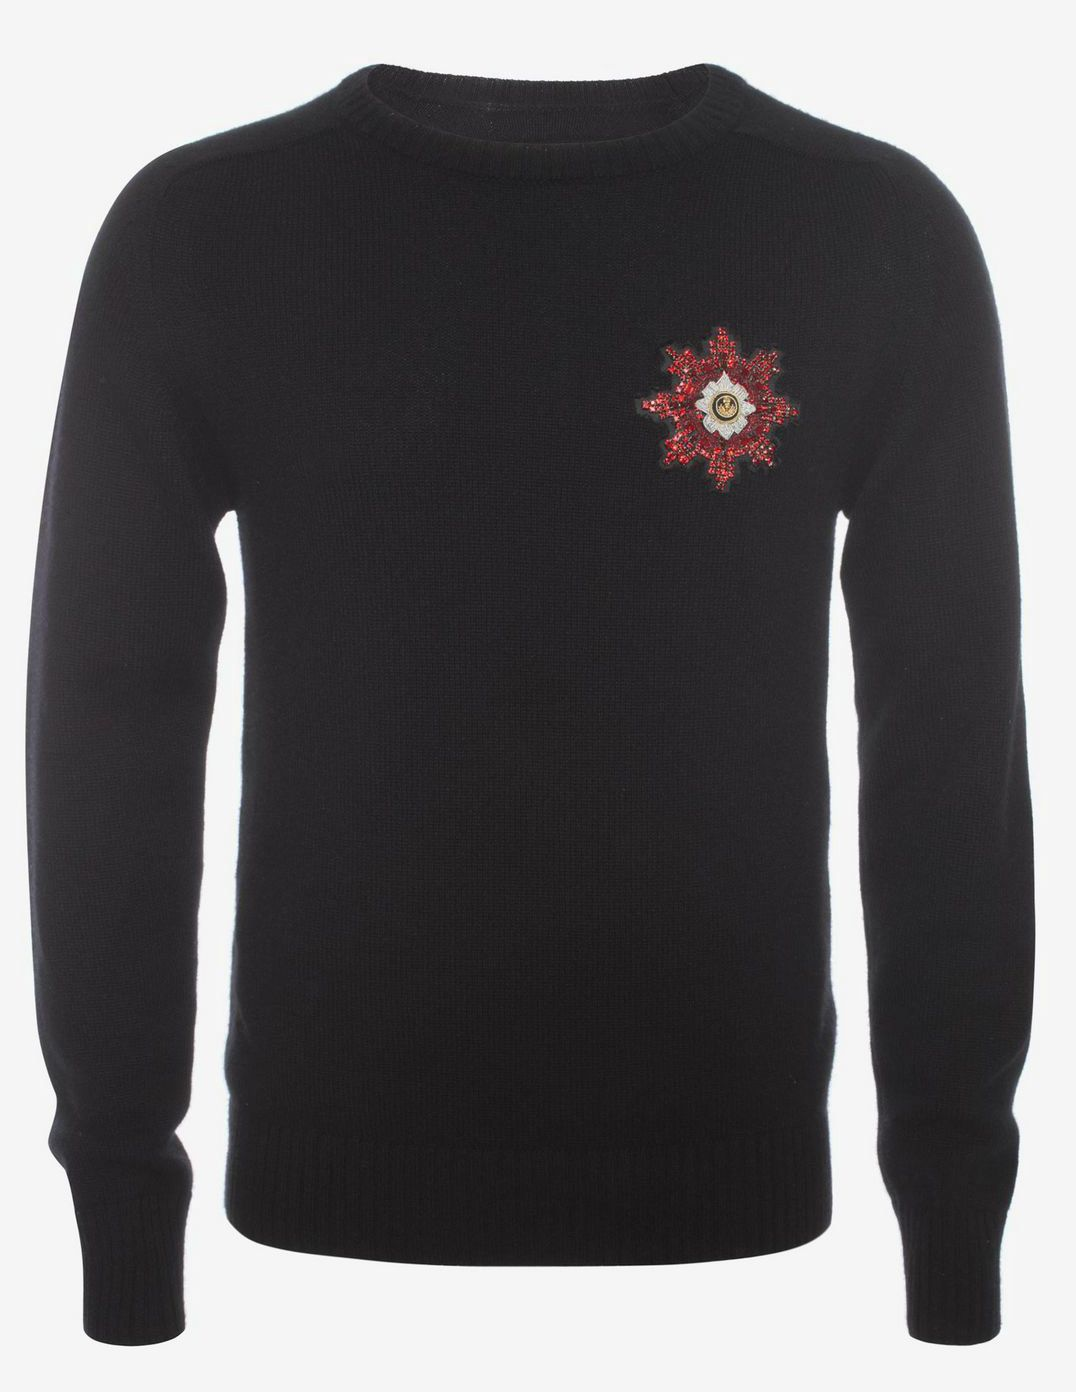 Alexander McQueen Medallion Embroidered Jumper. MATERIAL 100% Cashmere. 19 Jan 2016 at Alexander McQueen was 895 EUR, now 540 sizes: S-XL. 29 Jan 2017 on sale at Stylebop was 919 EUR, now 459 sizes: S-XL.